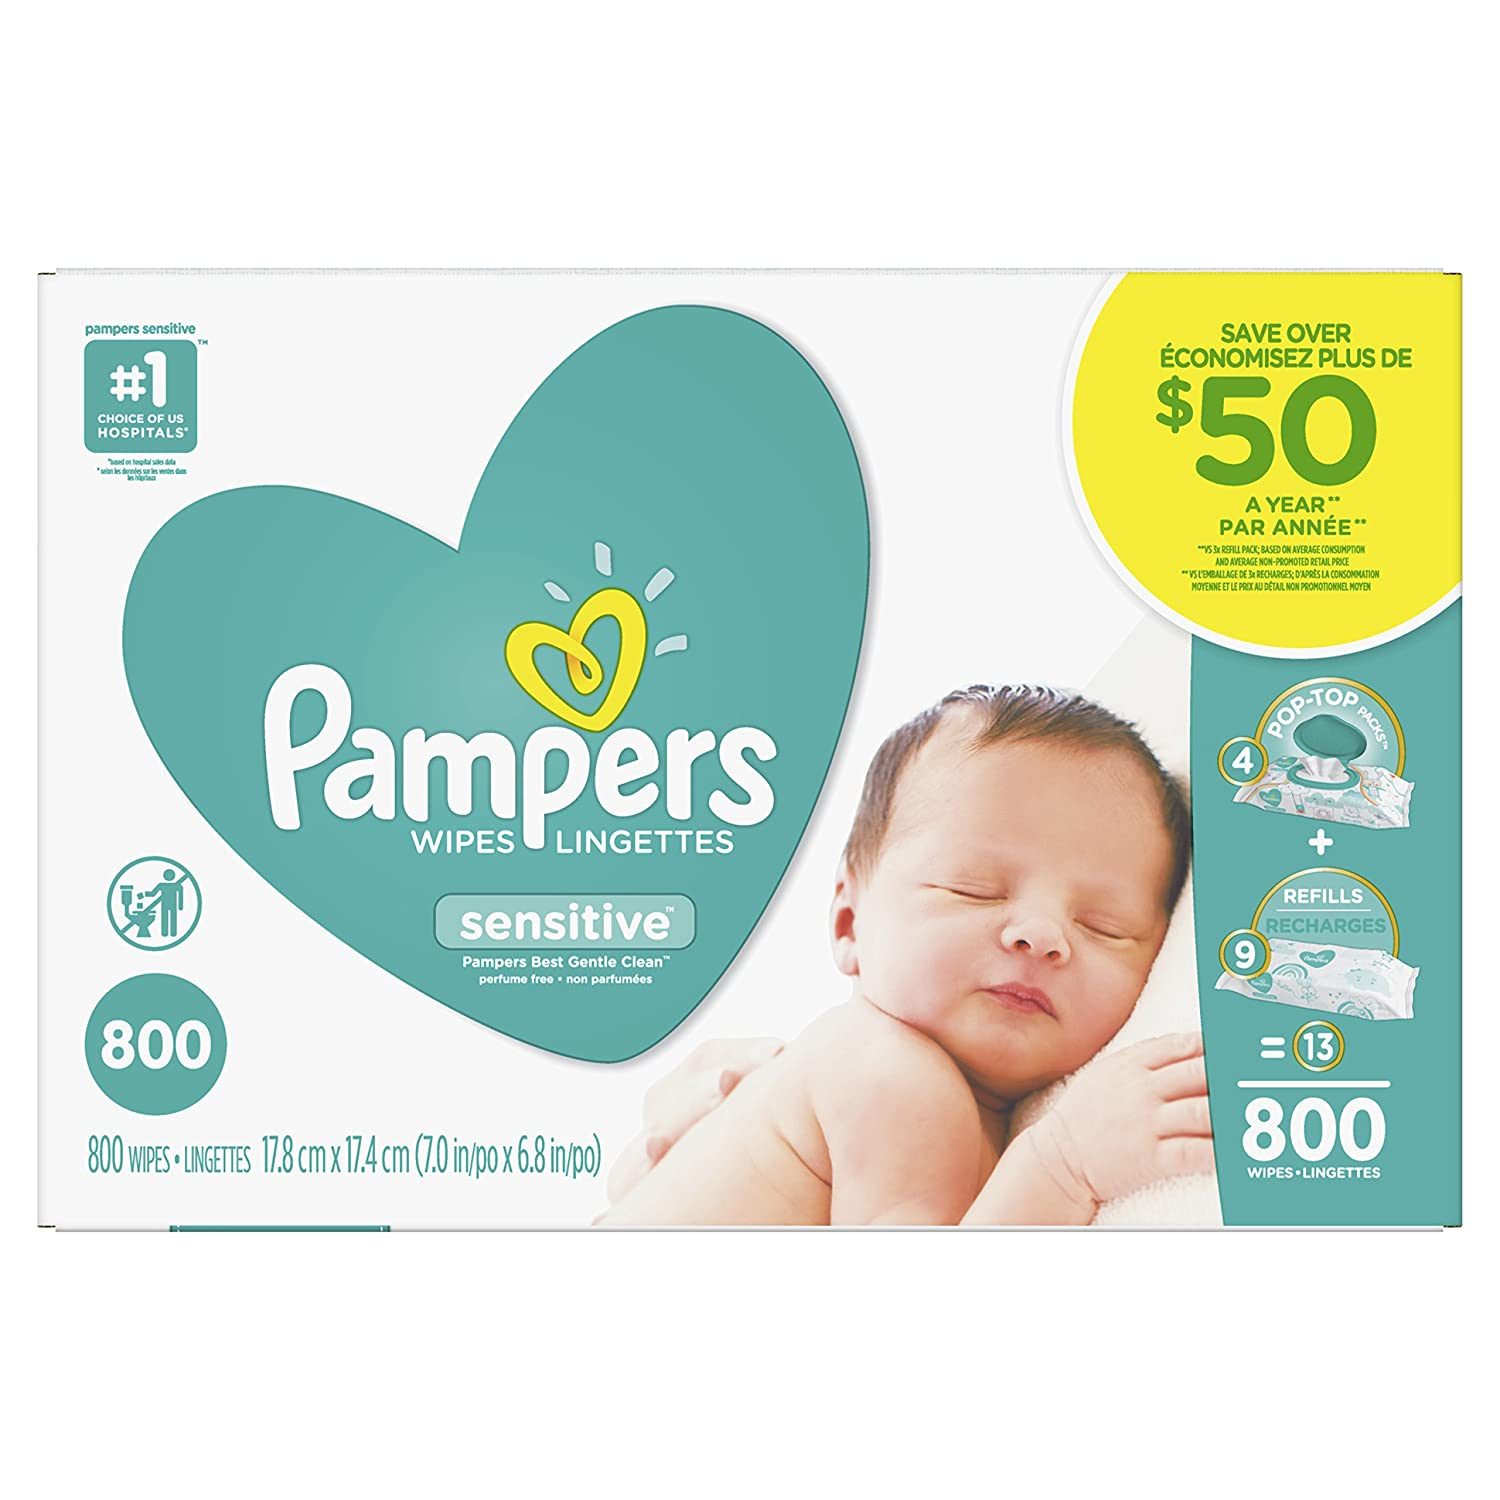 Pampers Baby Wipes Sensitive UNSCENTED 13X Pop-Top and Refill Multipack, 800 Count Procter and Gamble 80287807